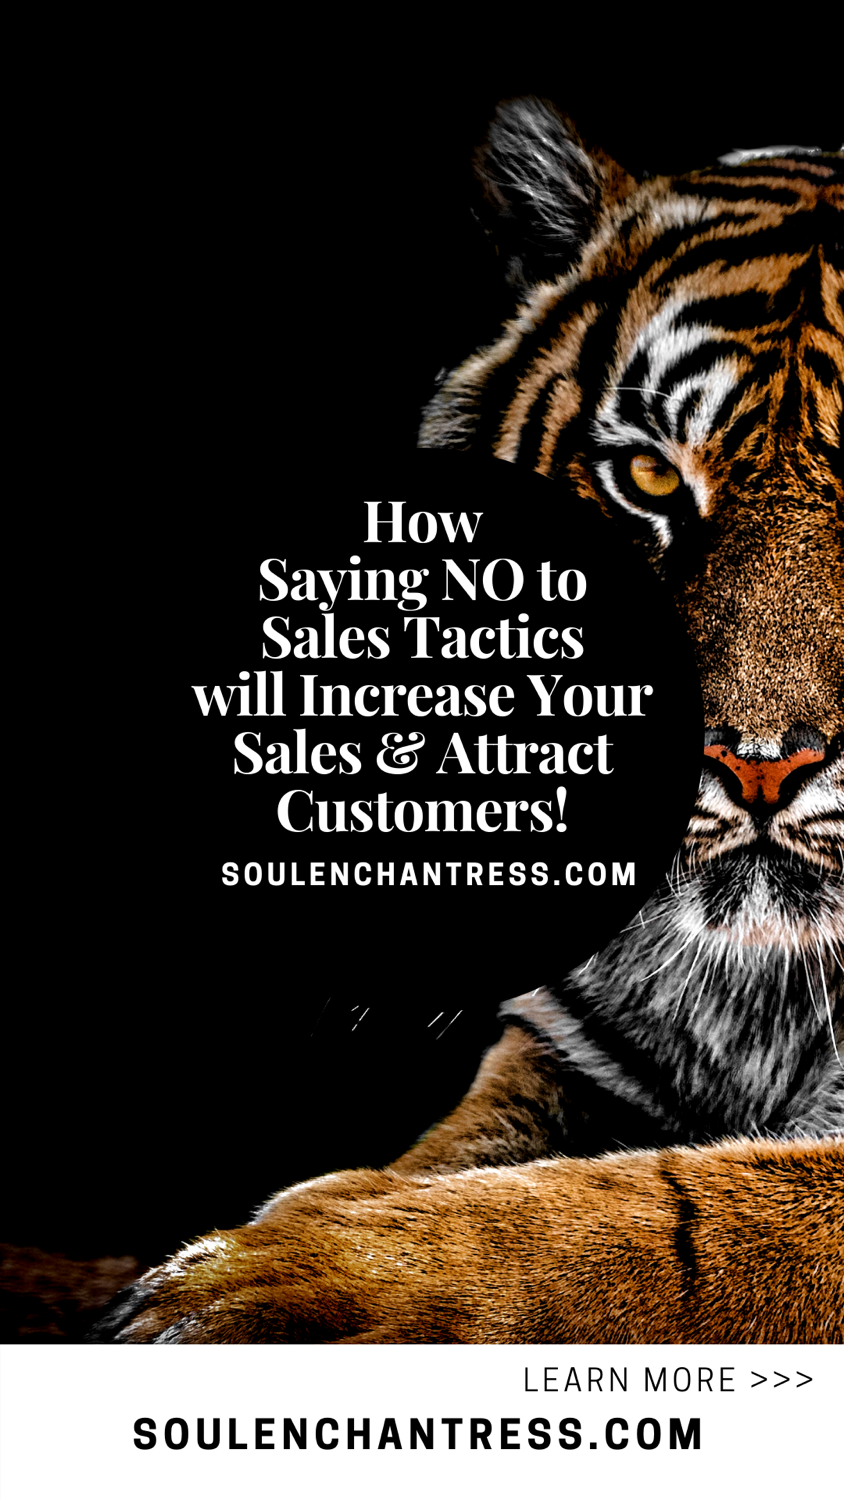 sales psychology, sales tactics, sales strategy, how to increase sales and attract customers, soulenchantress